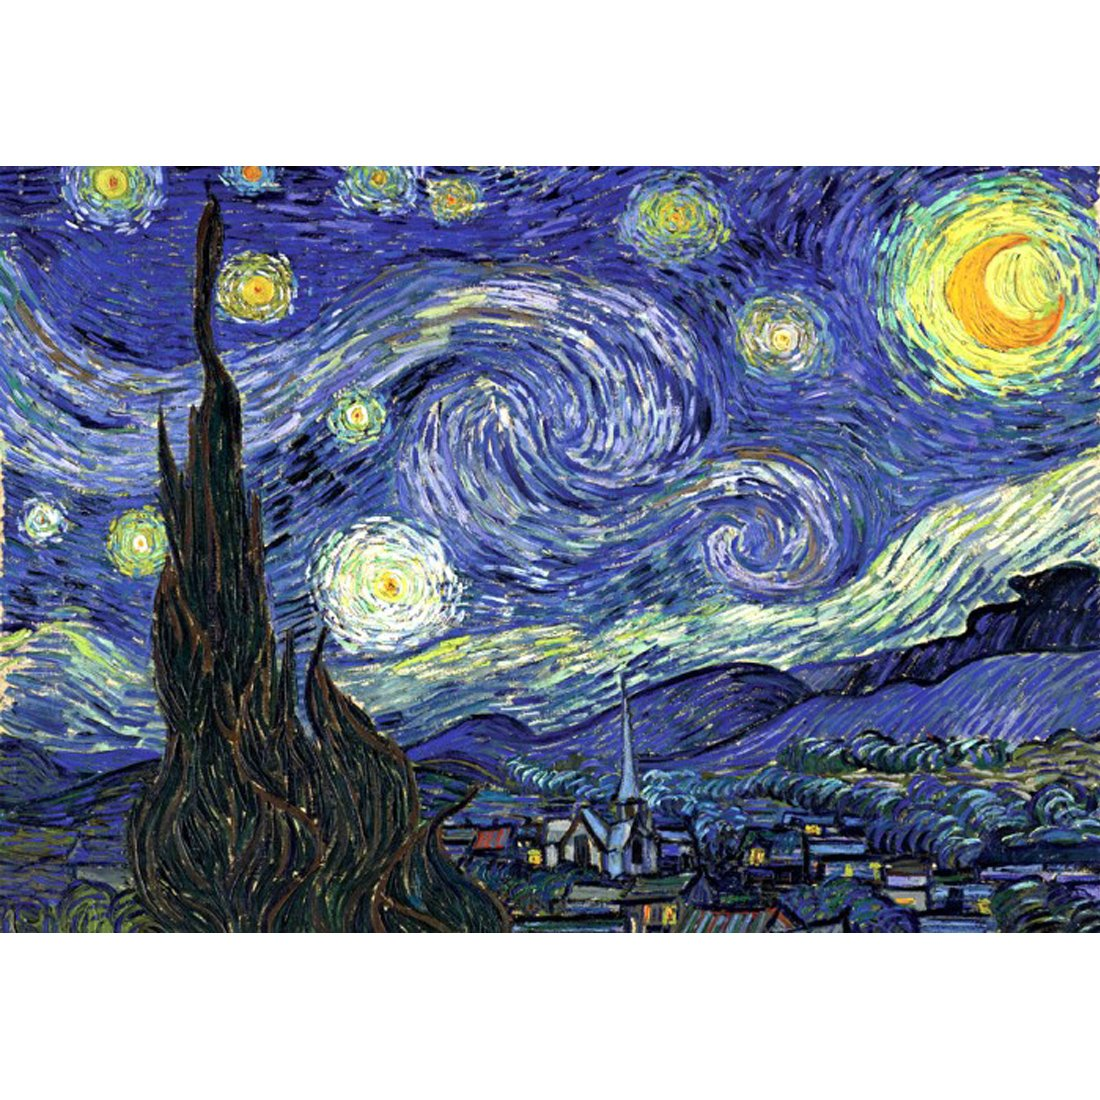 全ての おもちゃand Puzzle 1000 Piece Jigsaw おもちゃand Jigsaw 1000 Puzzle , The Starry Night 51 x 73.5 CM B078XSJ1YG, コクブンジチョウ:1b7d9d90 --- a0267596.xsph.ru